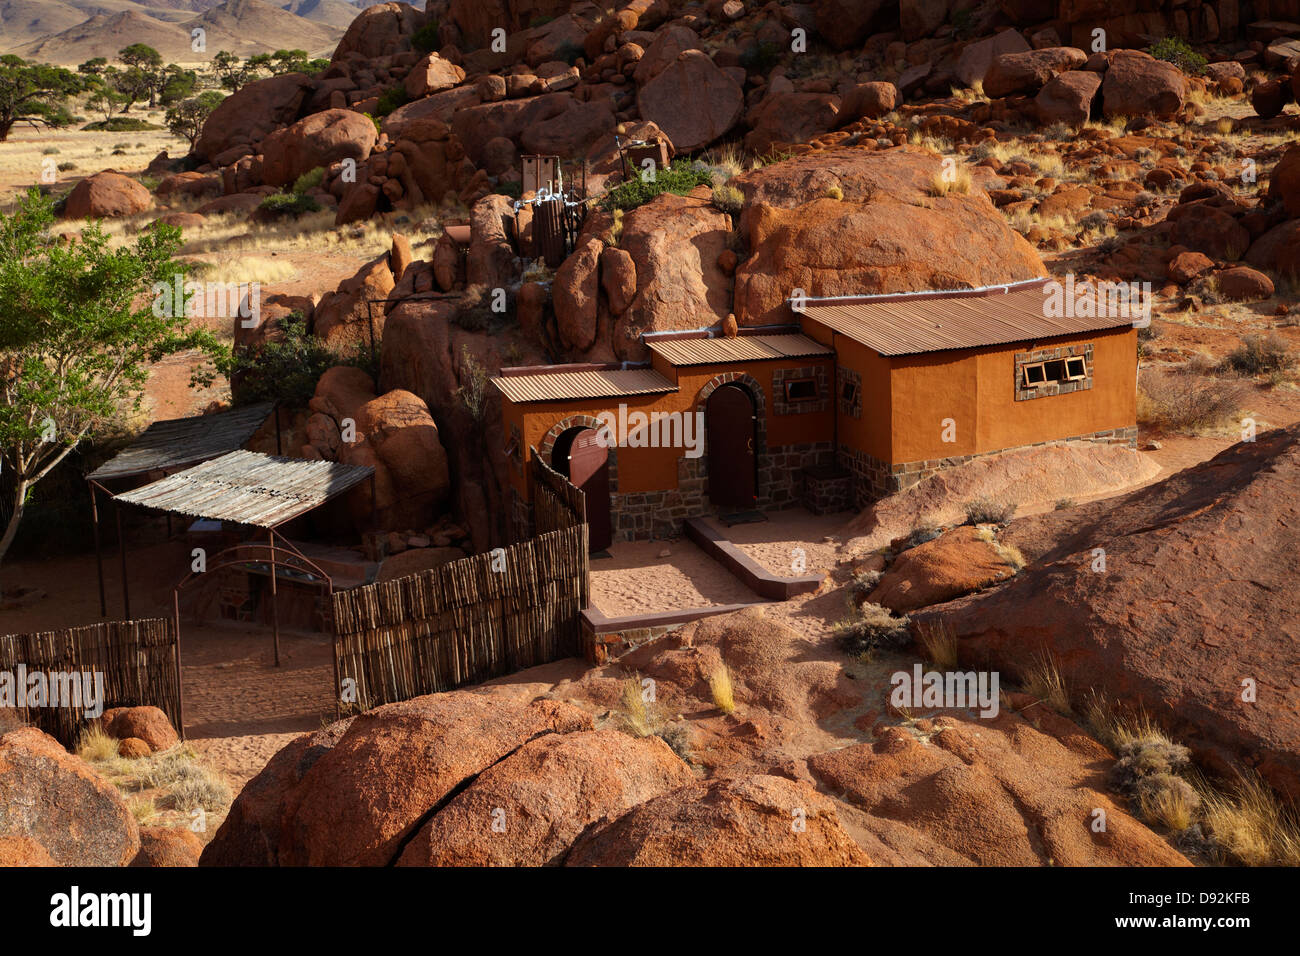 Ablutions block built into rocks, camp site at Ranch Koiimasis, Tiras Mountains, Southern Namibia, Africa - Stock Image